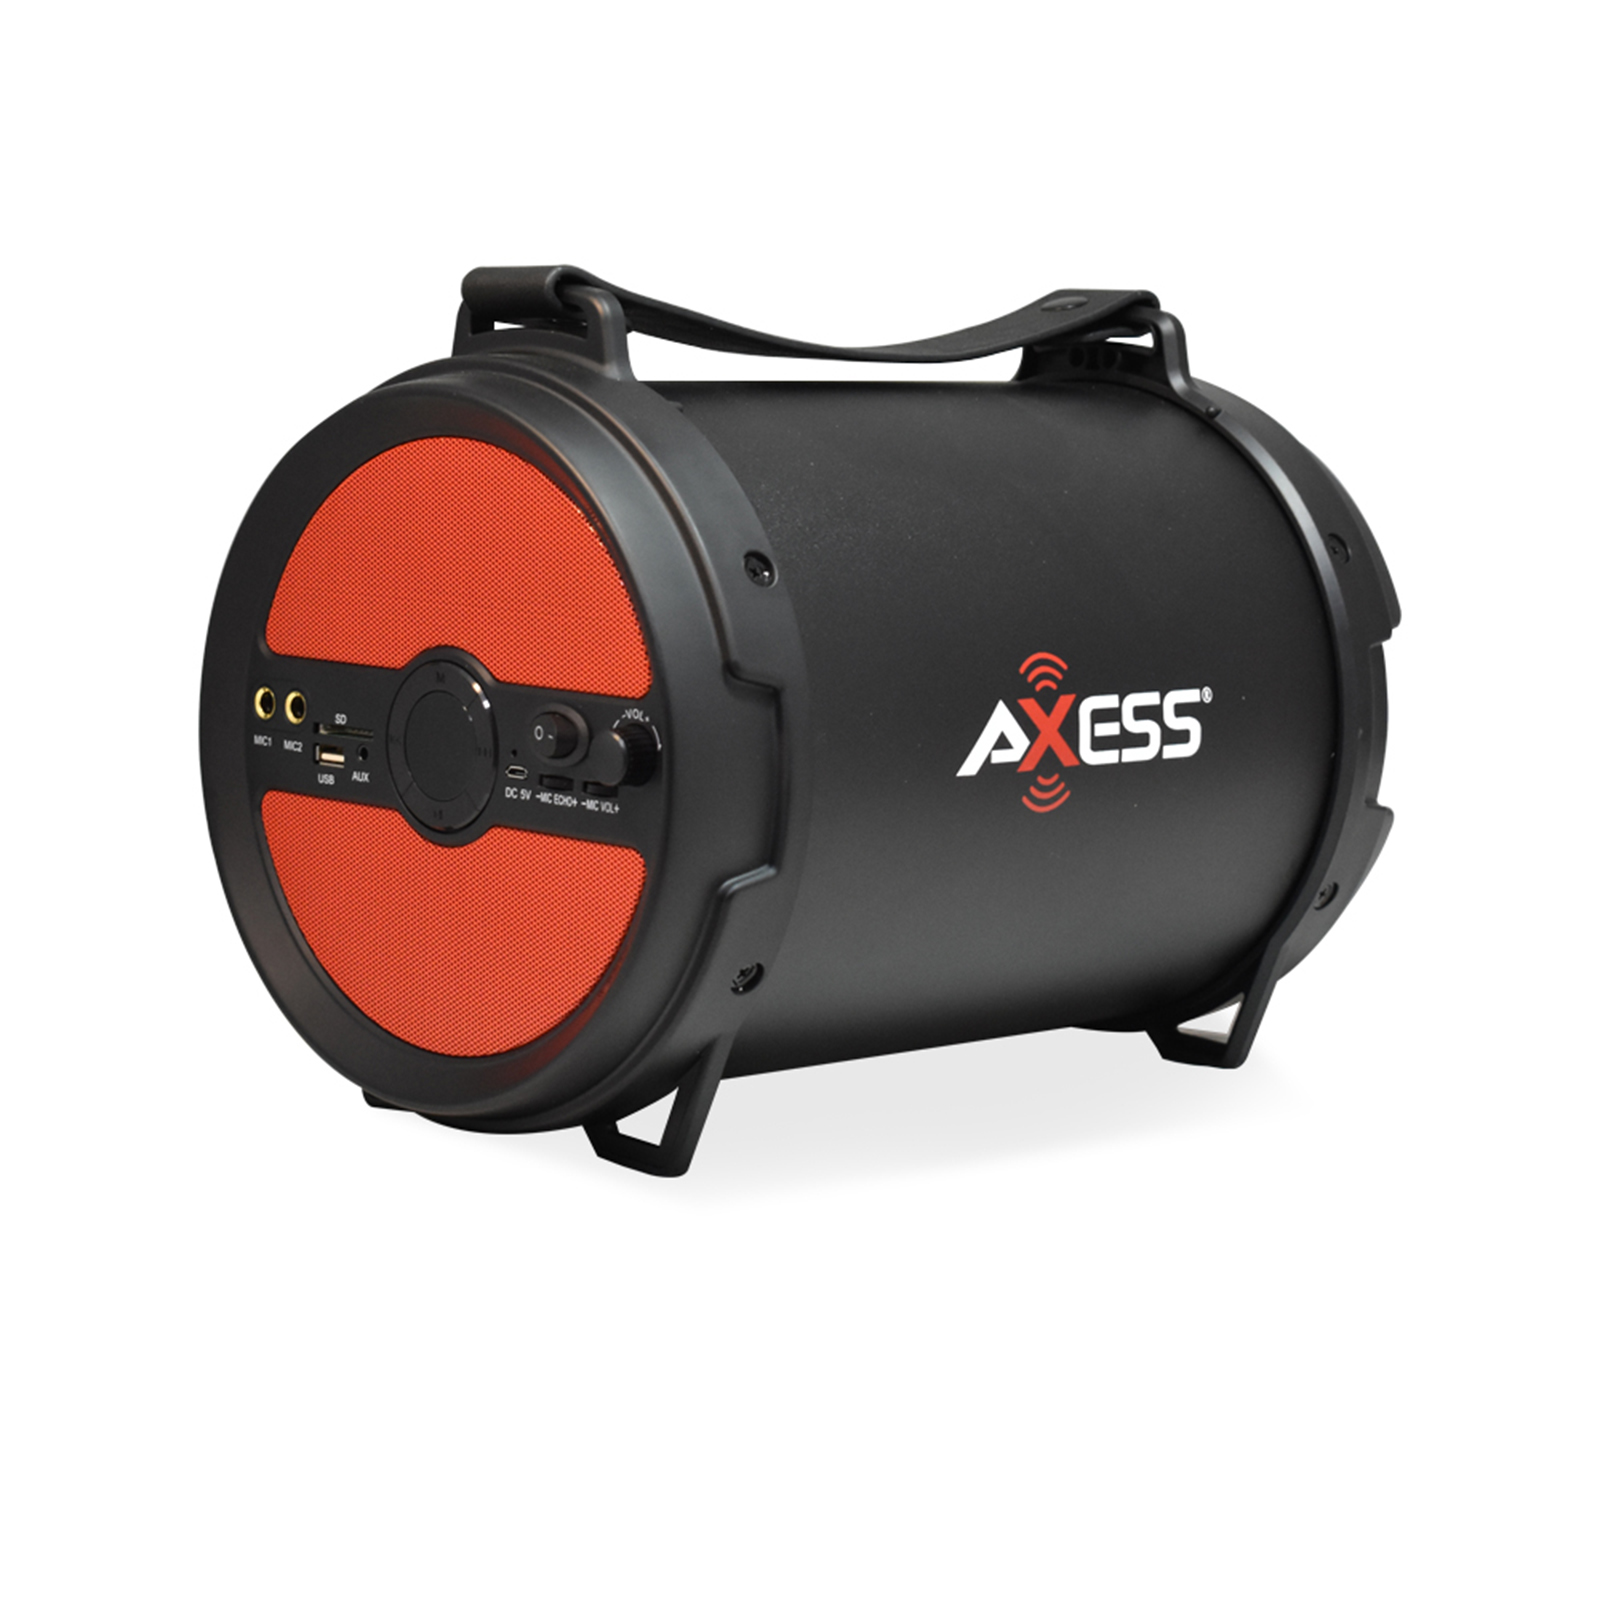 Axxess BT Media Speaker with 6 Inch Speaker and 2 Microphone Inputs in Red